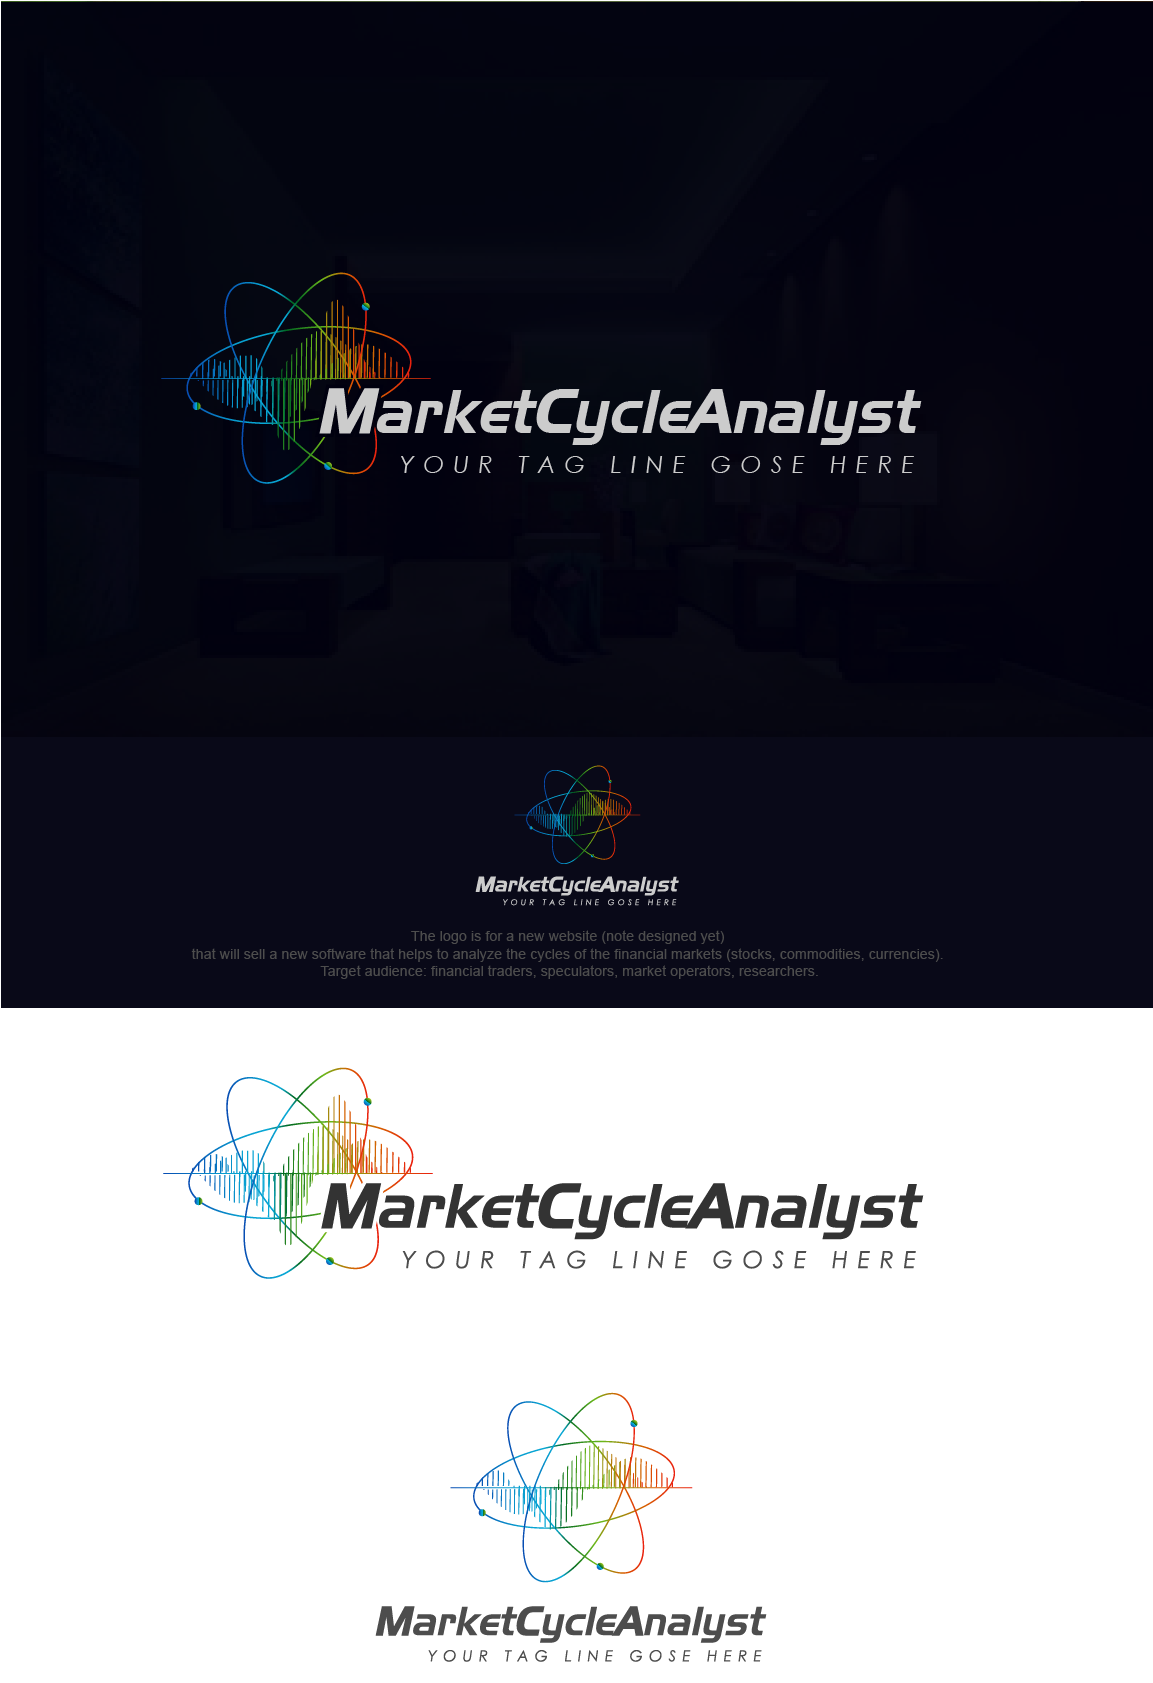 Logo for new software that analyzes financial markets using cycle theories